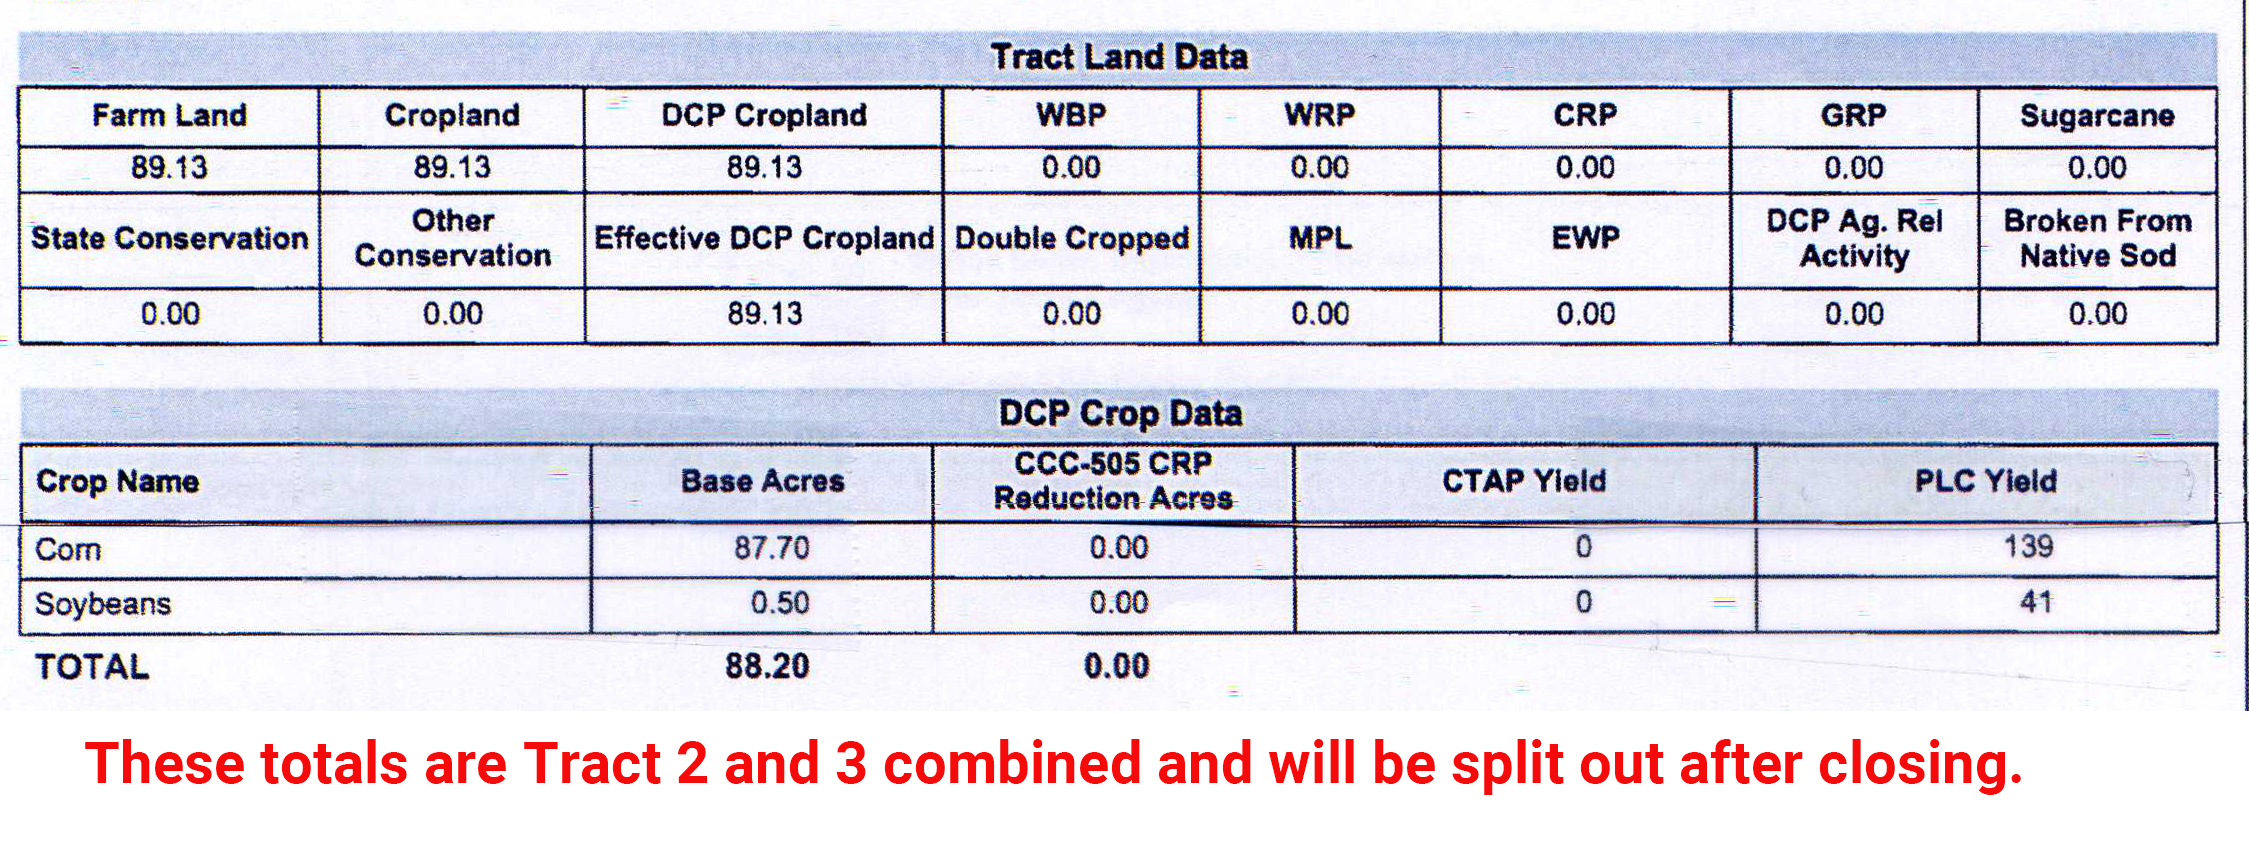 Crop Info Tract 2 & 3